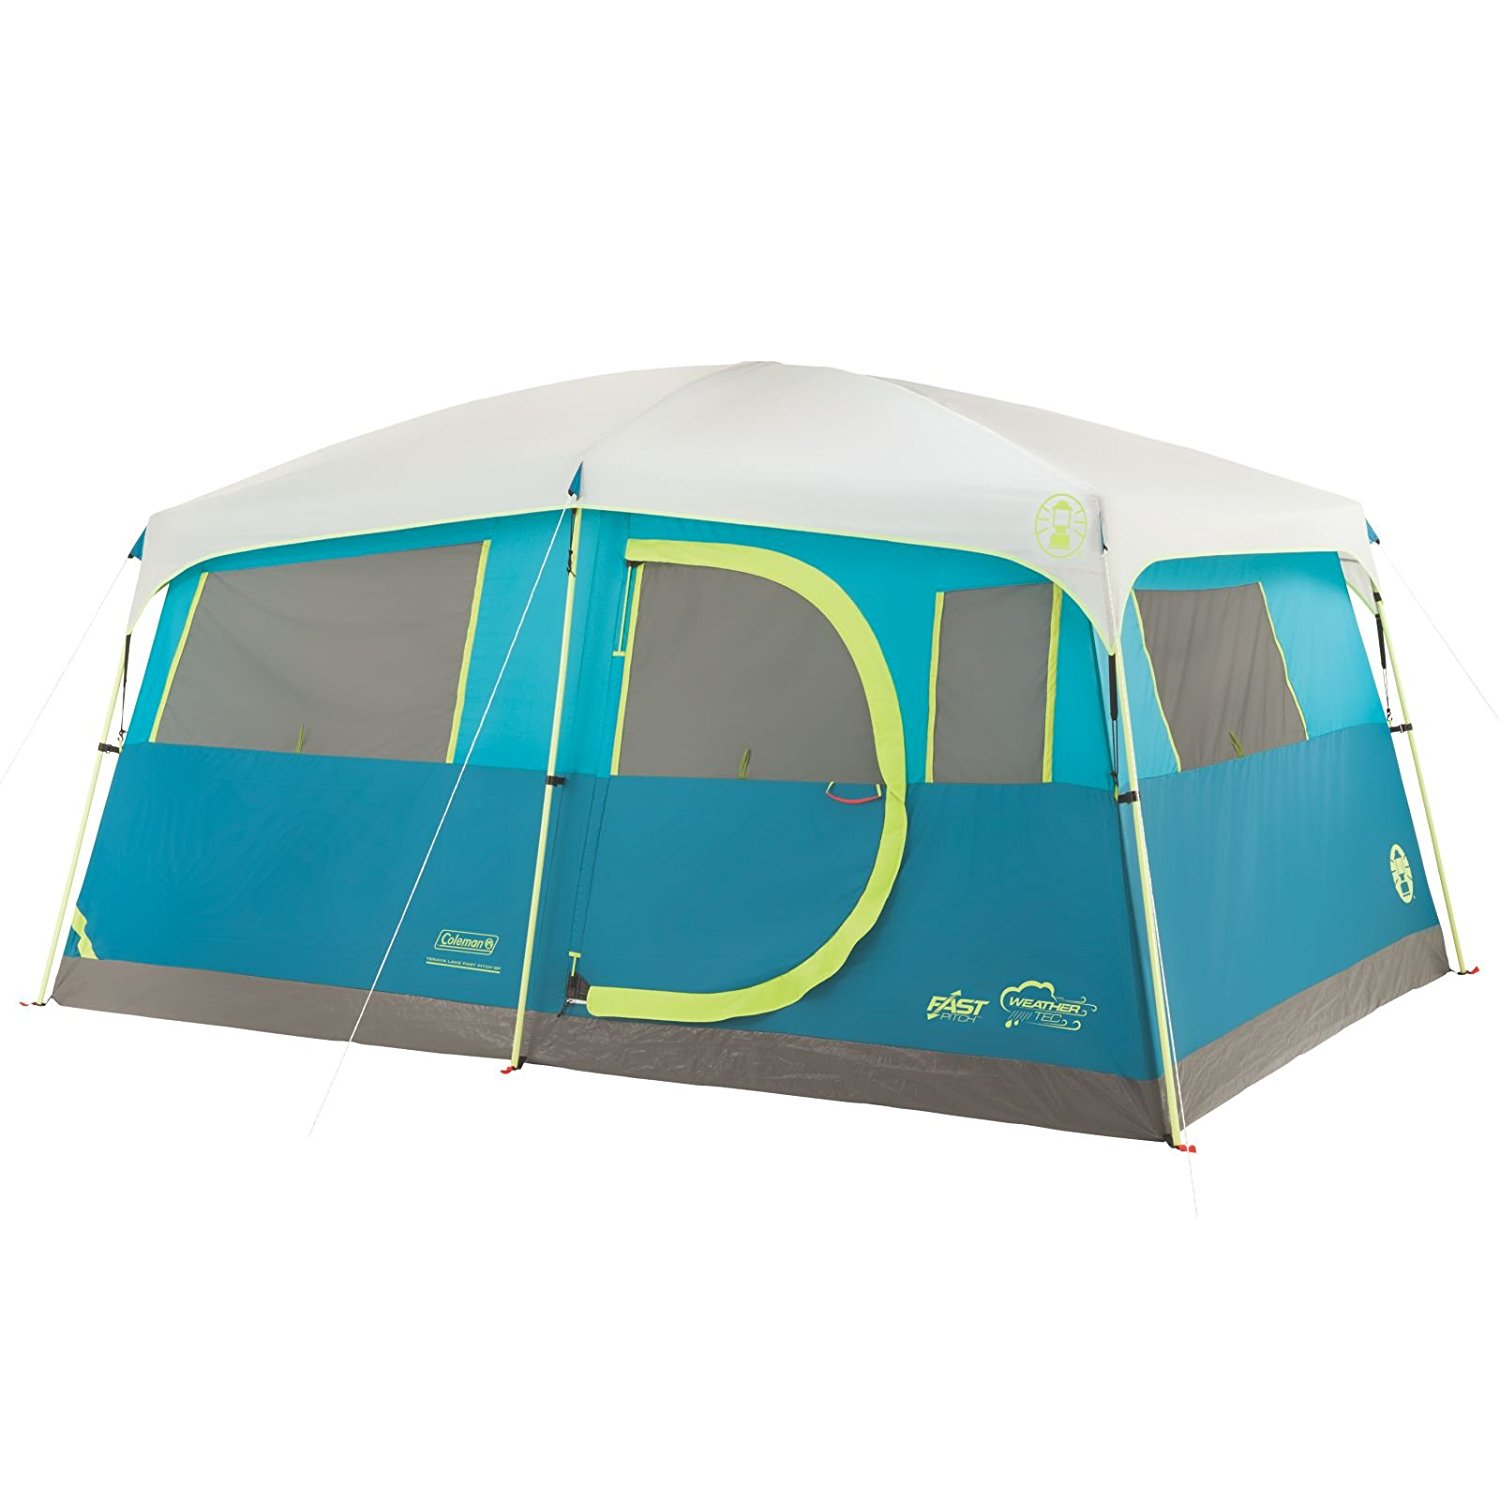 This Is One Of The Huge Family Tents That Come With Inbuilt Hanger Bars And Shelves To Make Life Easier For You However Tent Said Be Only 75